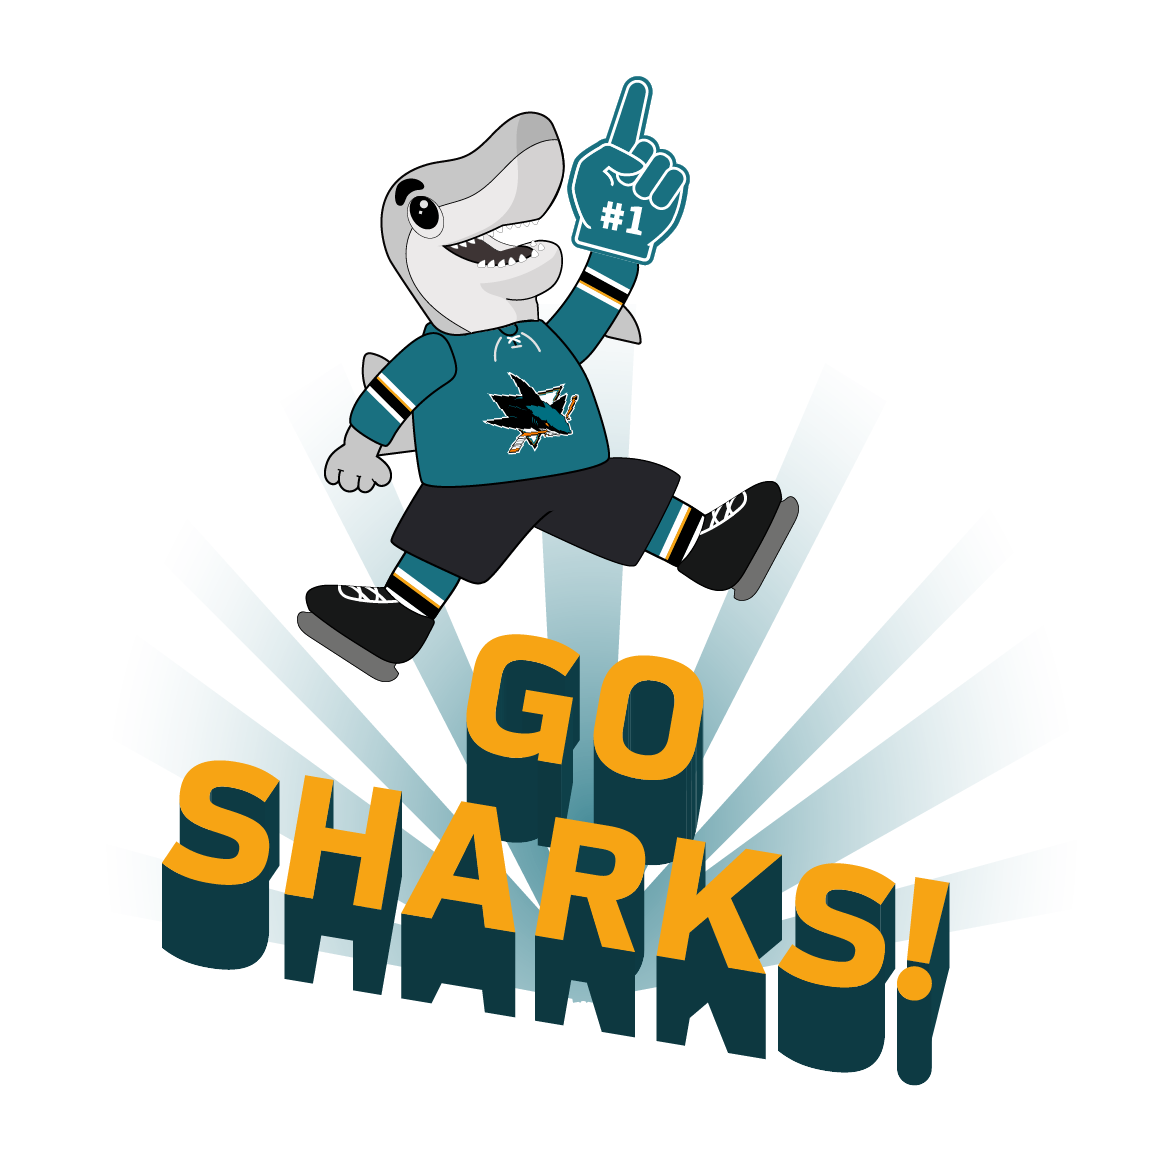 S.J. Sharkie Sticker Pack messages sticker-3